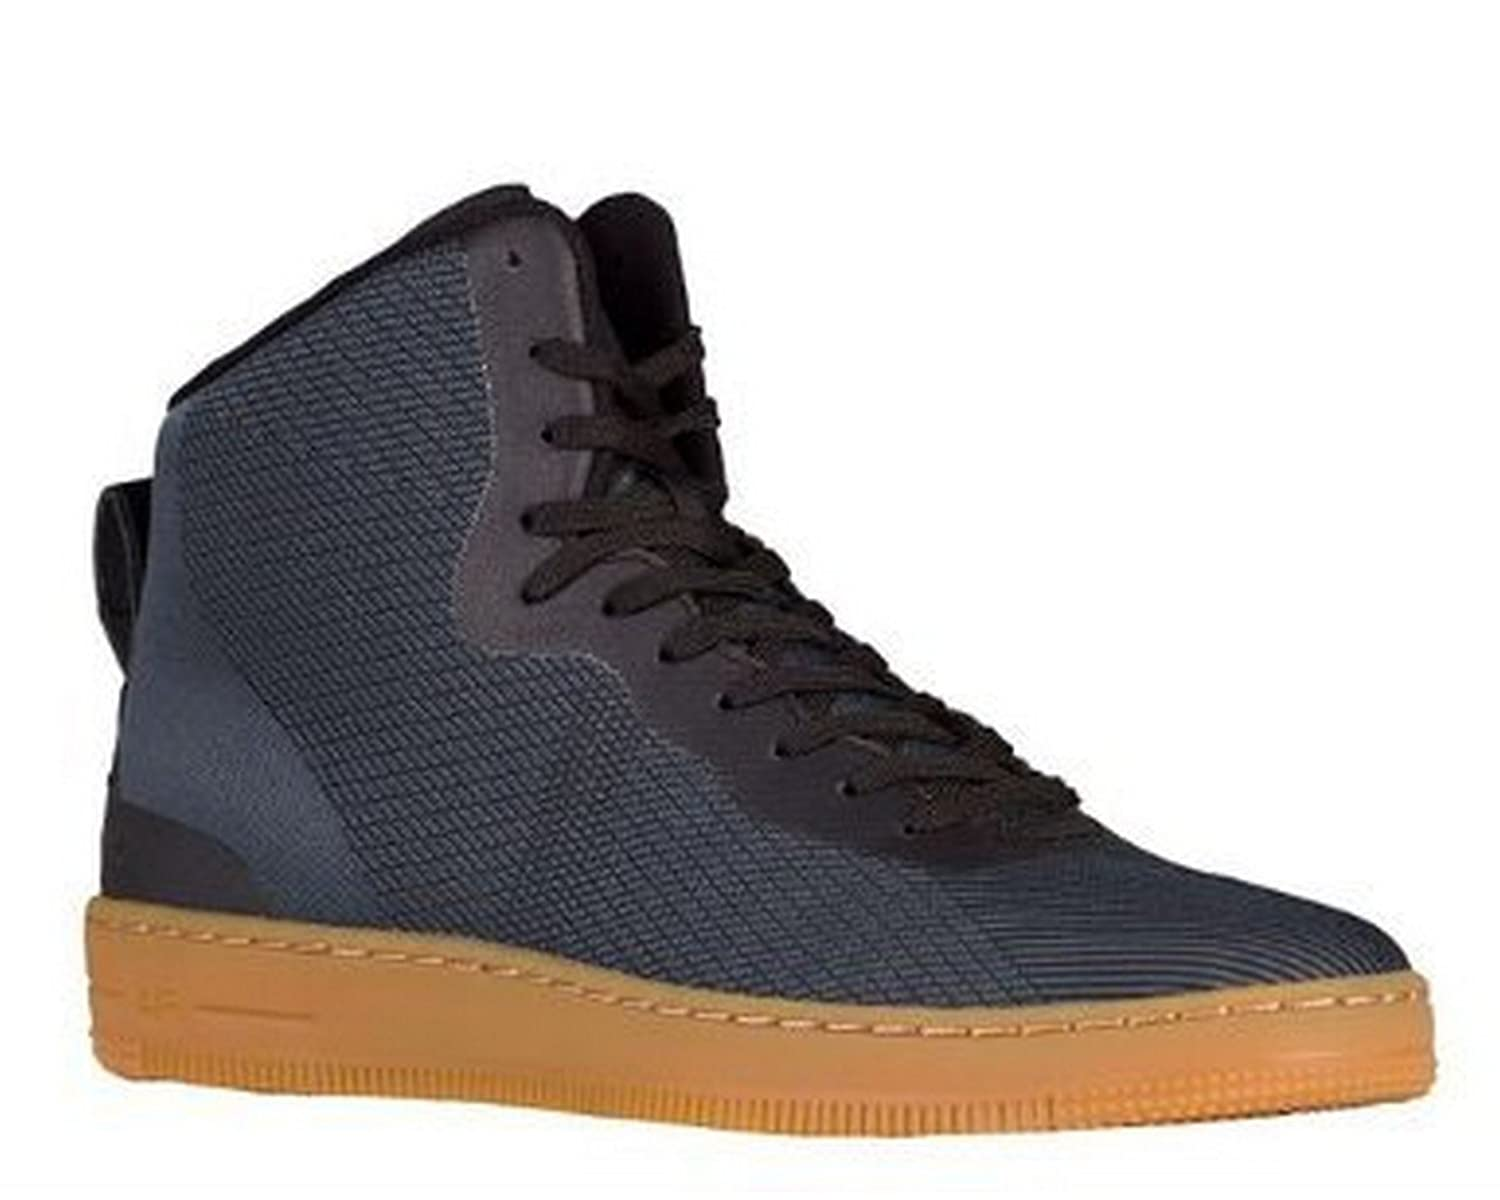 Nike Men's Nsw Pro Stepper Shoes (10.5, ANTHRACITE) 85%OFF ...